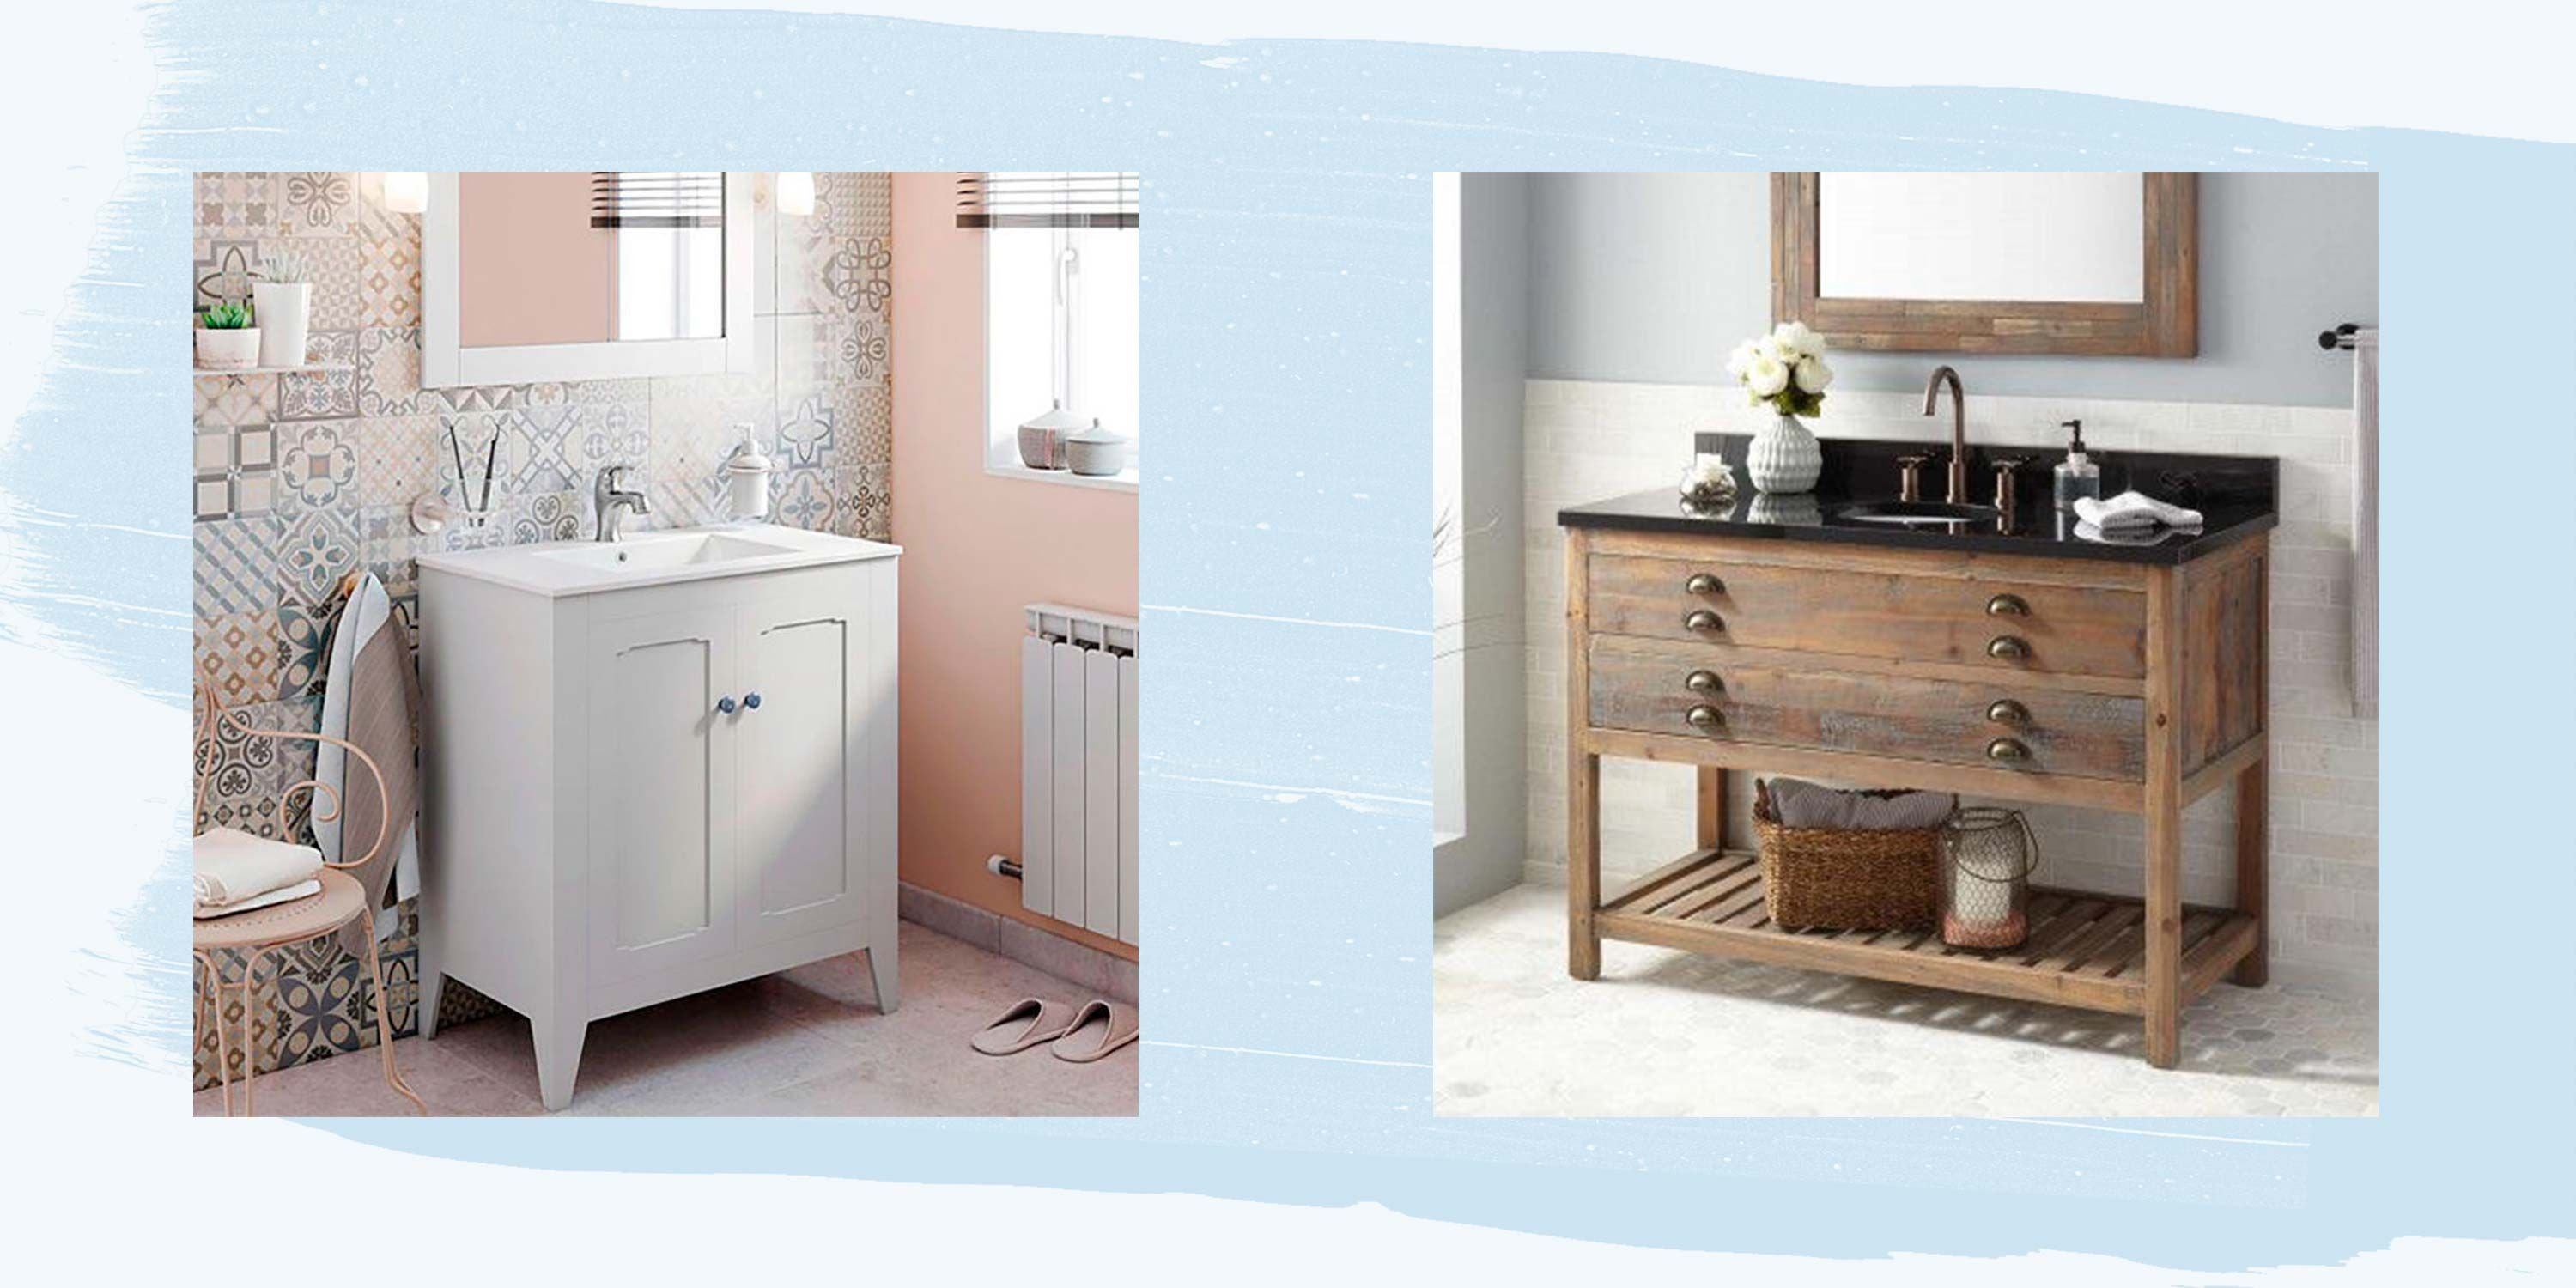 3 Best Bathroom Vanity Stores - Where to Buy Bathroom Vanities